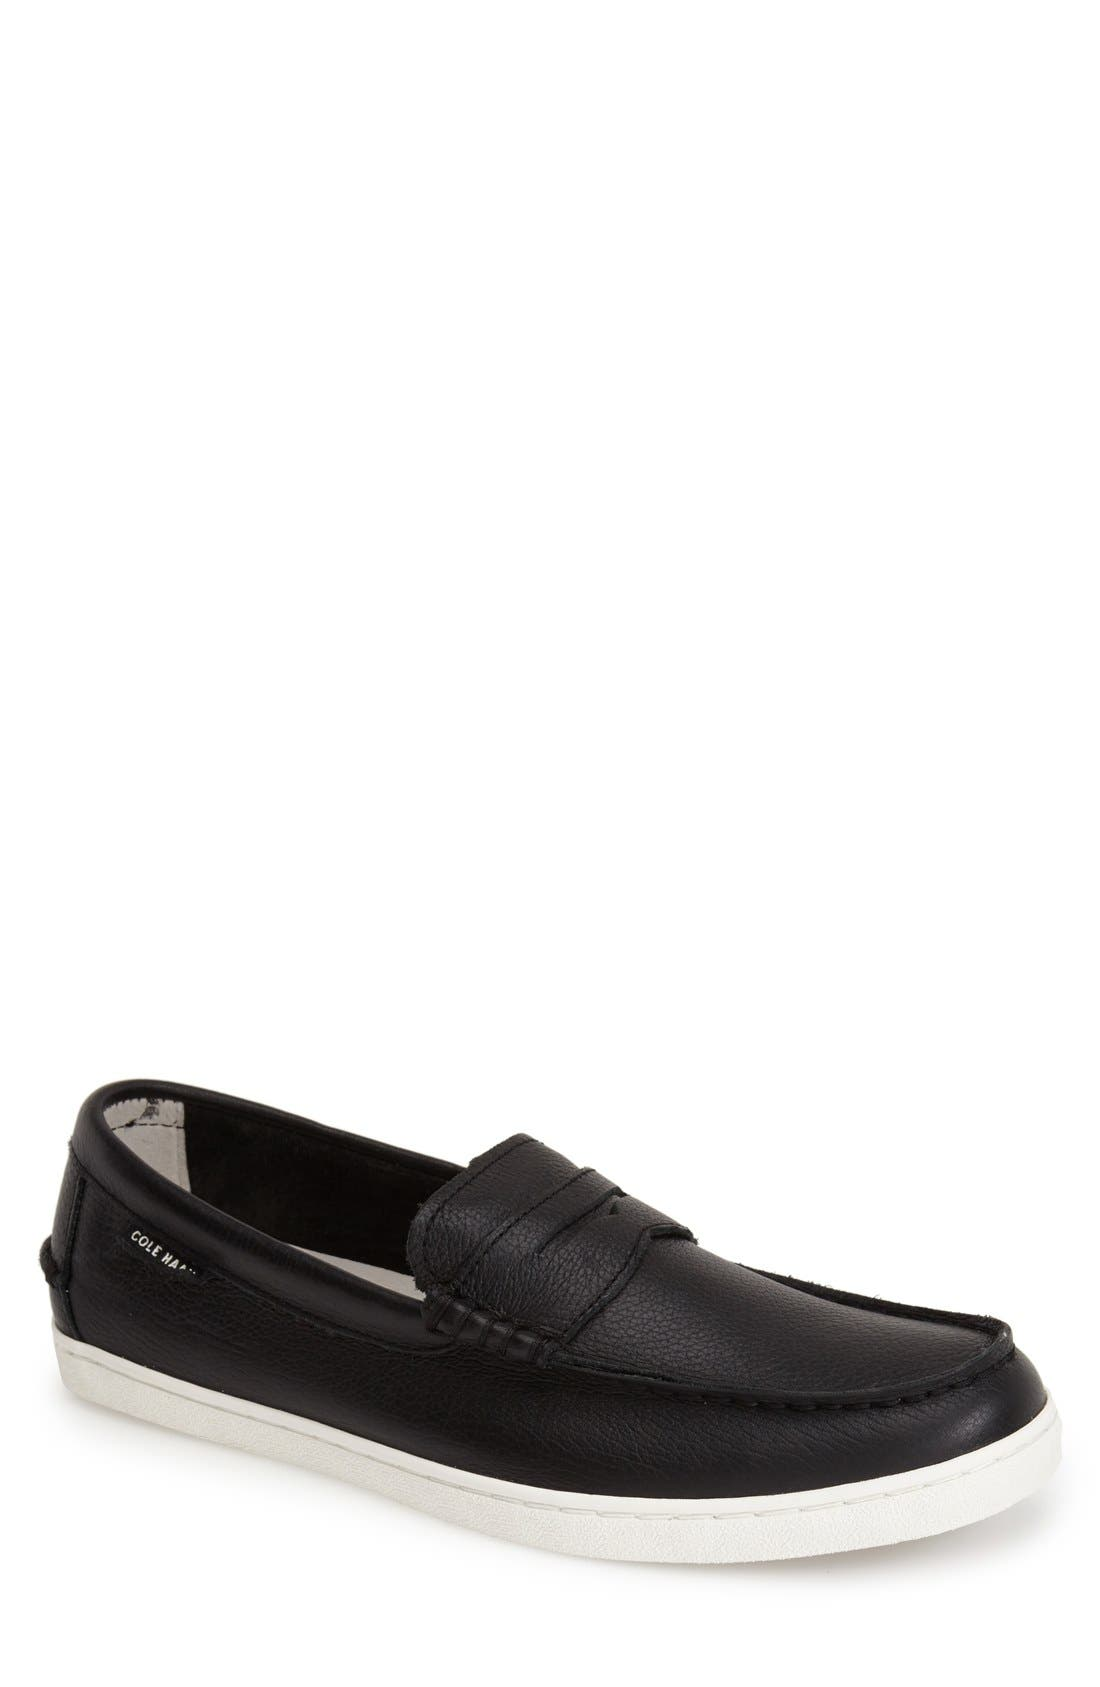 'Pinch' Penny Loafer,                             Main thumbnail 1, color,                             Black Leather/ White